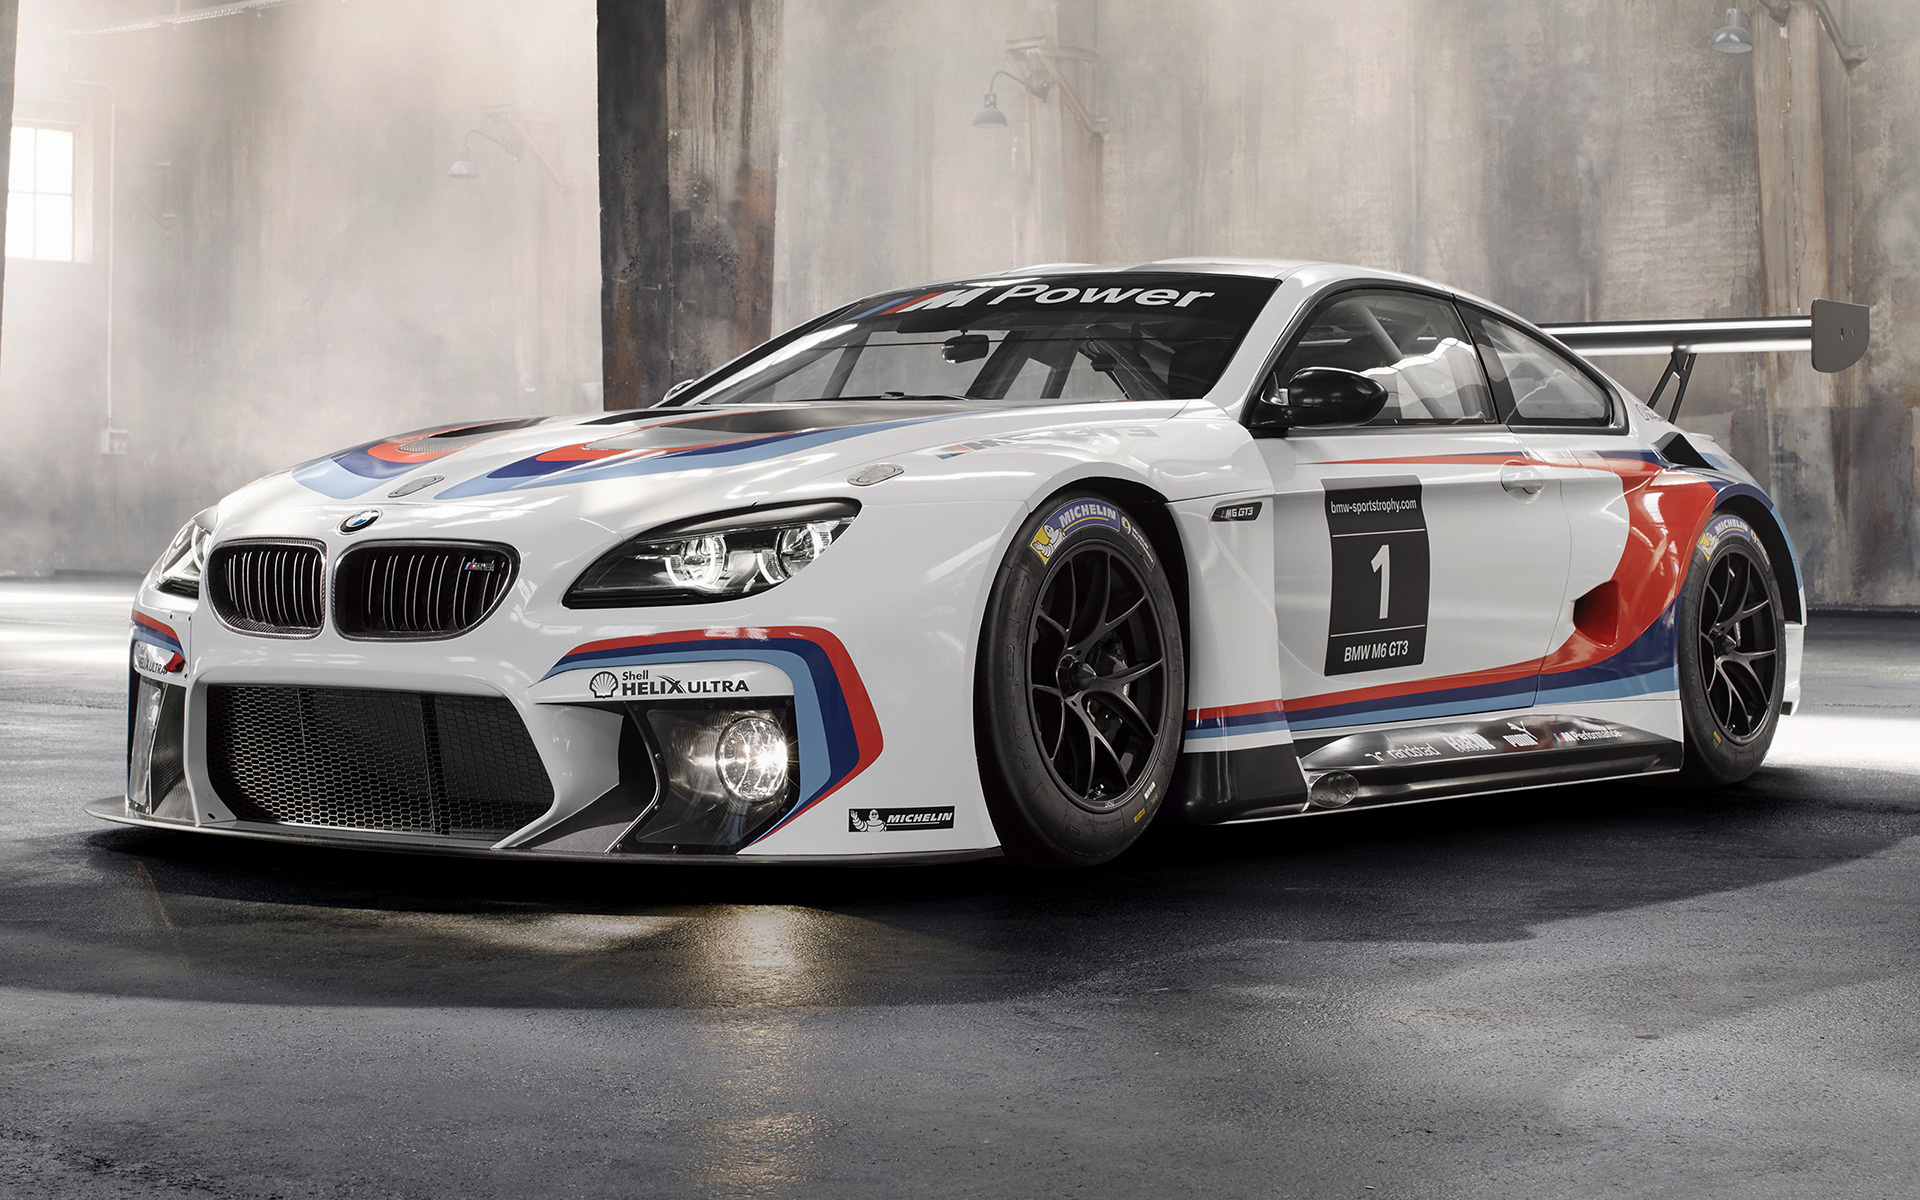 BMW M6 GT3 (2015) Wallpapers and HD Images - Car Pixel